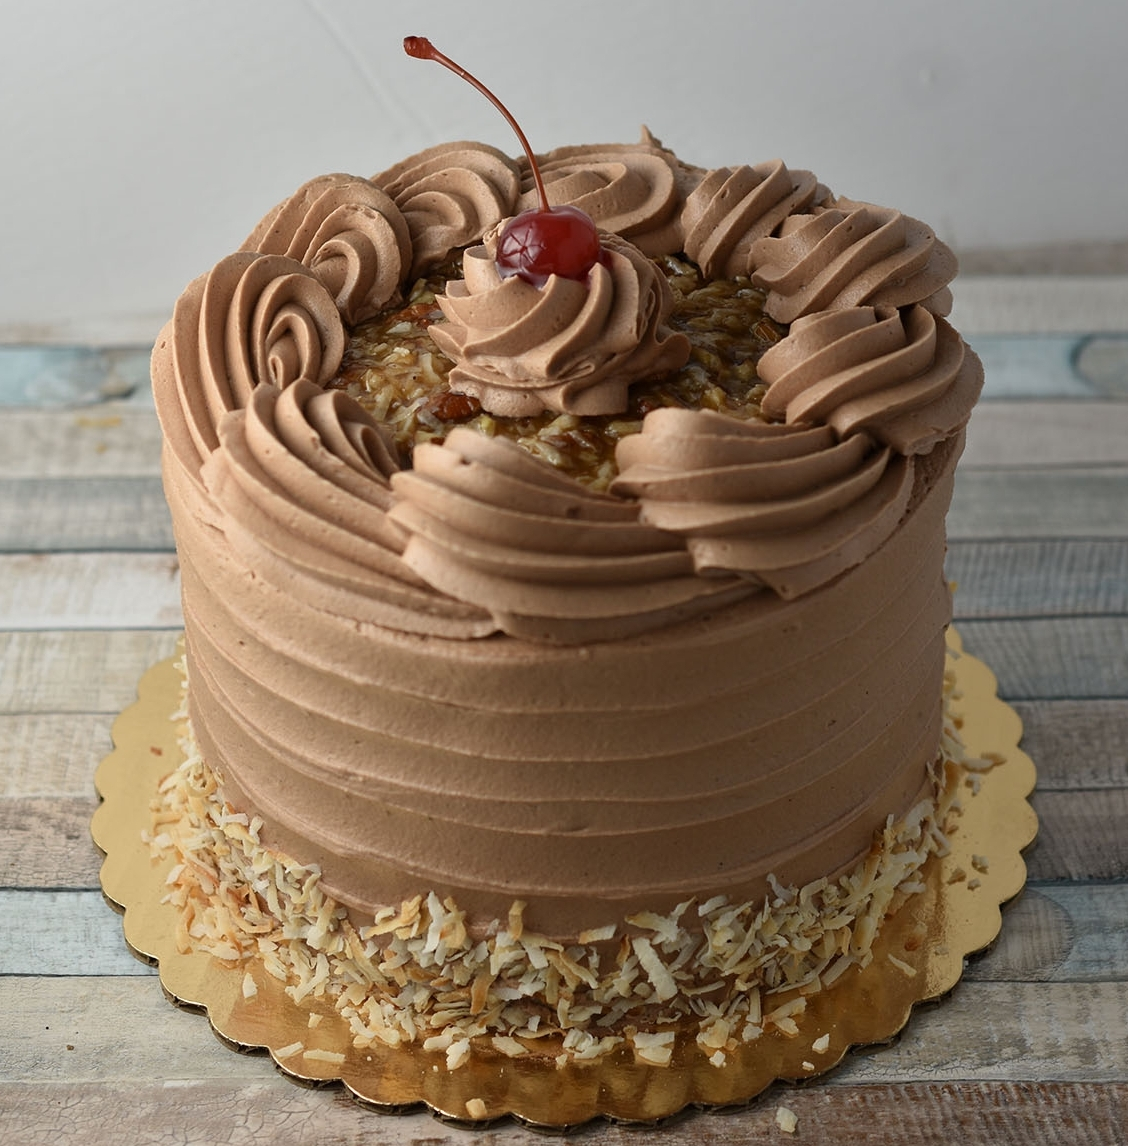 German Chocolate - Just like you remembered it! A creamy mixture of homemade caramel, pecans, and coconut between layers of moist chocolate cake and creamy chocolate frosting.Gluten Free option available.